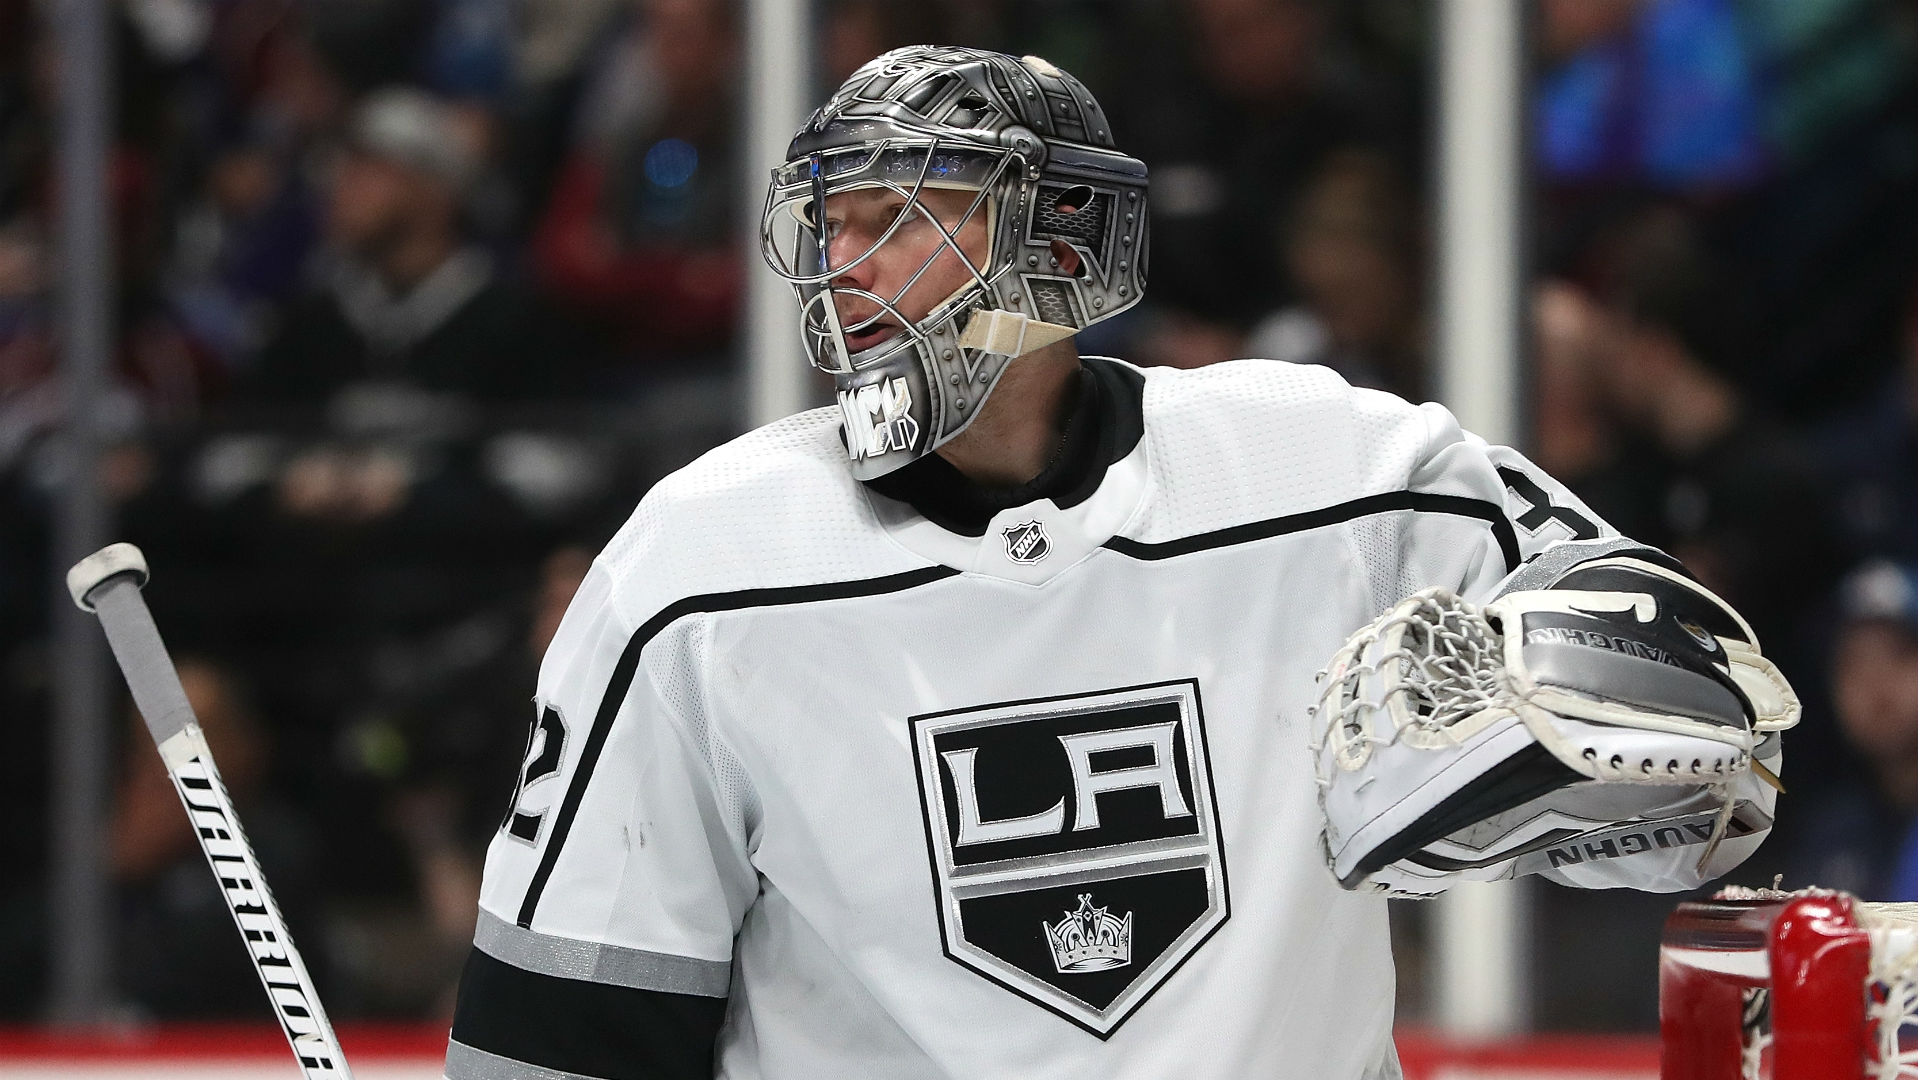 Nhl Rumor Roundup Two Time Stanley Cup Winner Jonathan Quick May